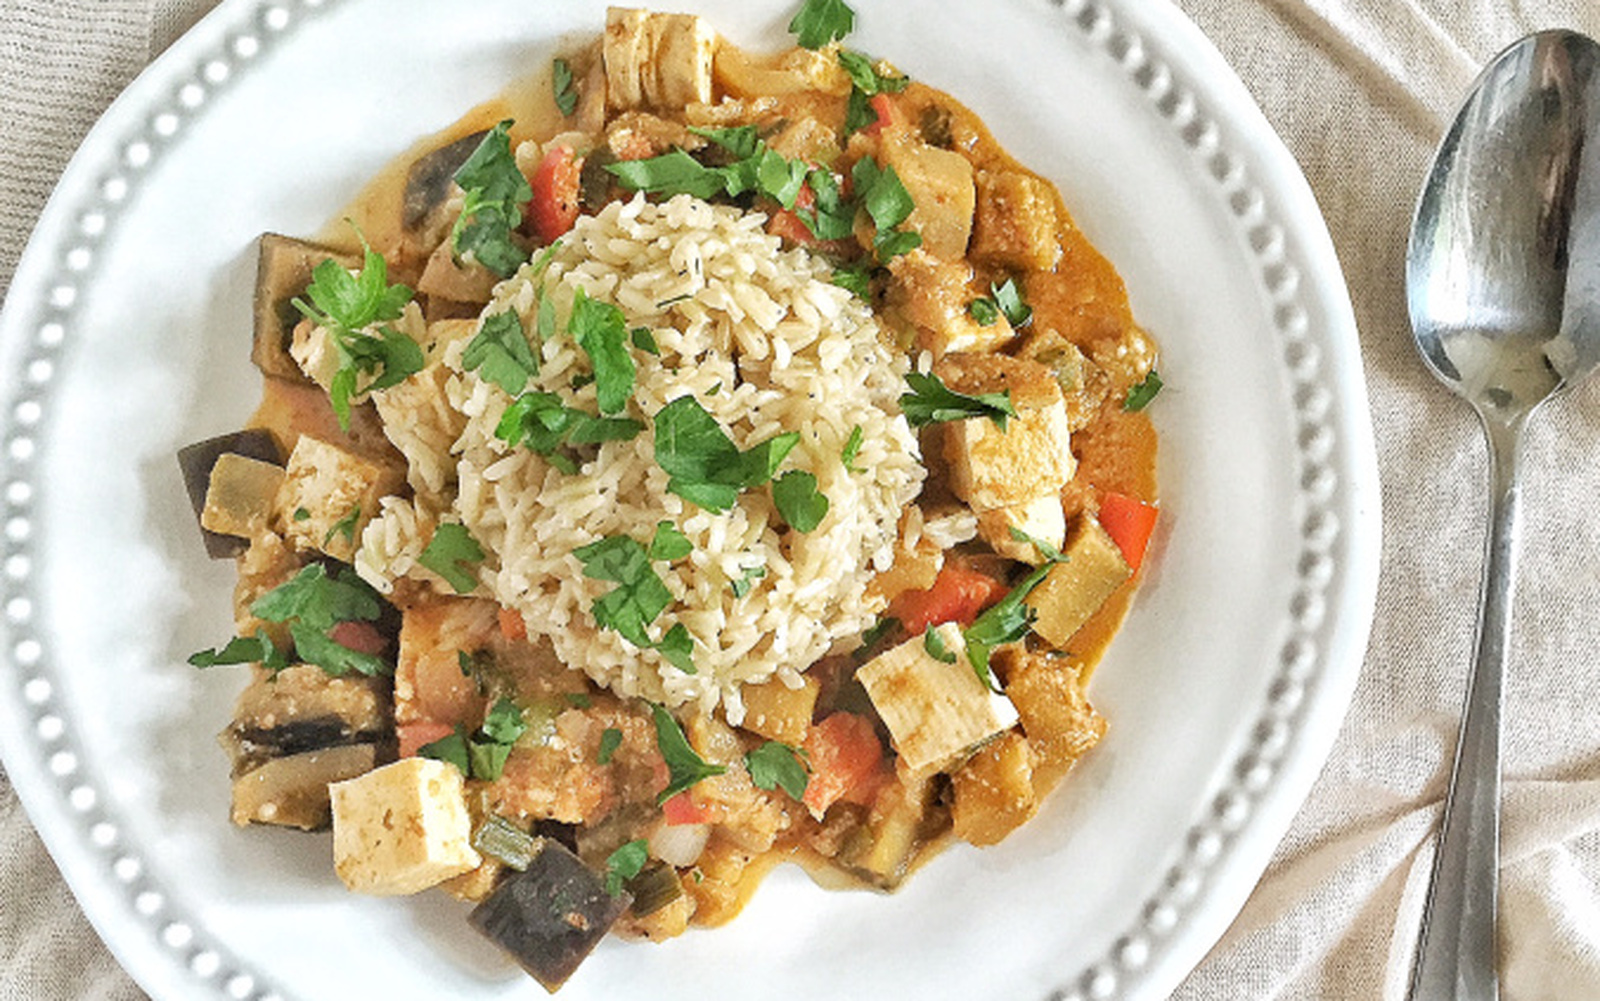 Vegan and Gluten-free Creole-Style Eggplant and Tofu Étouffée